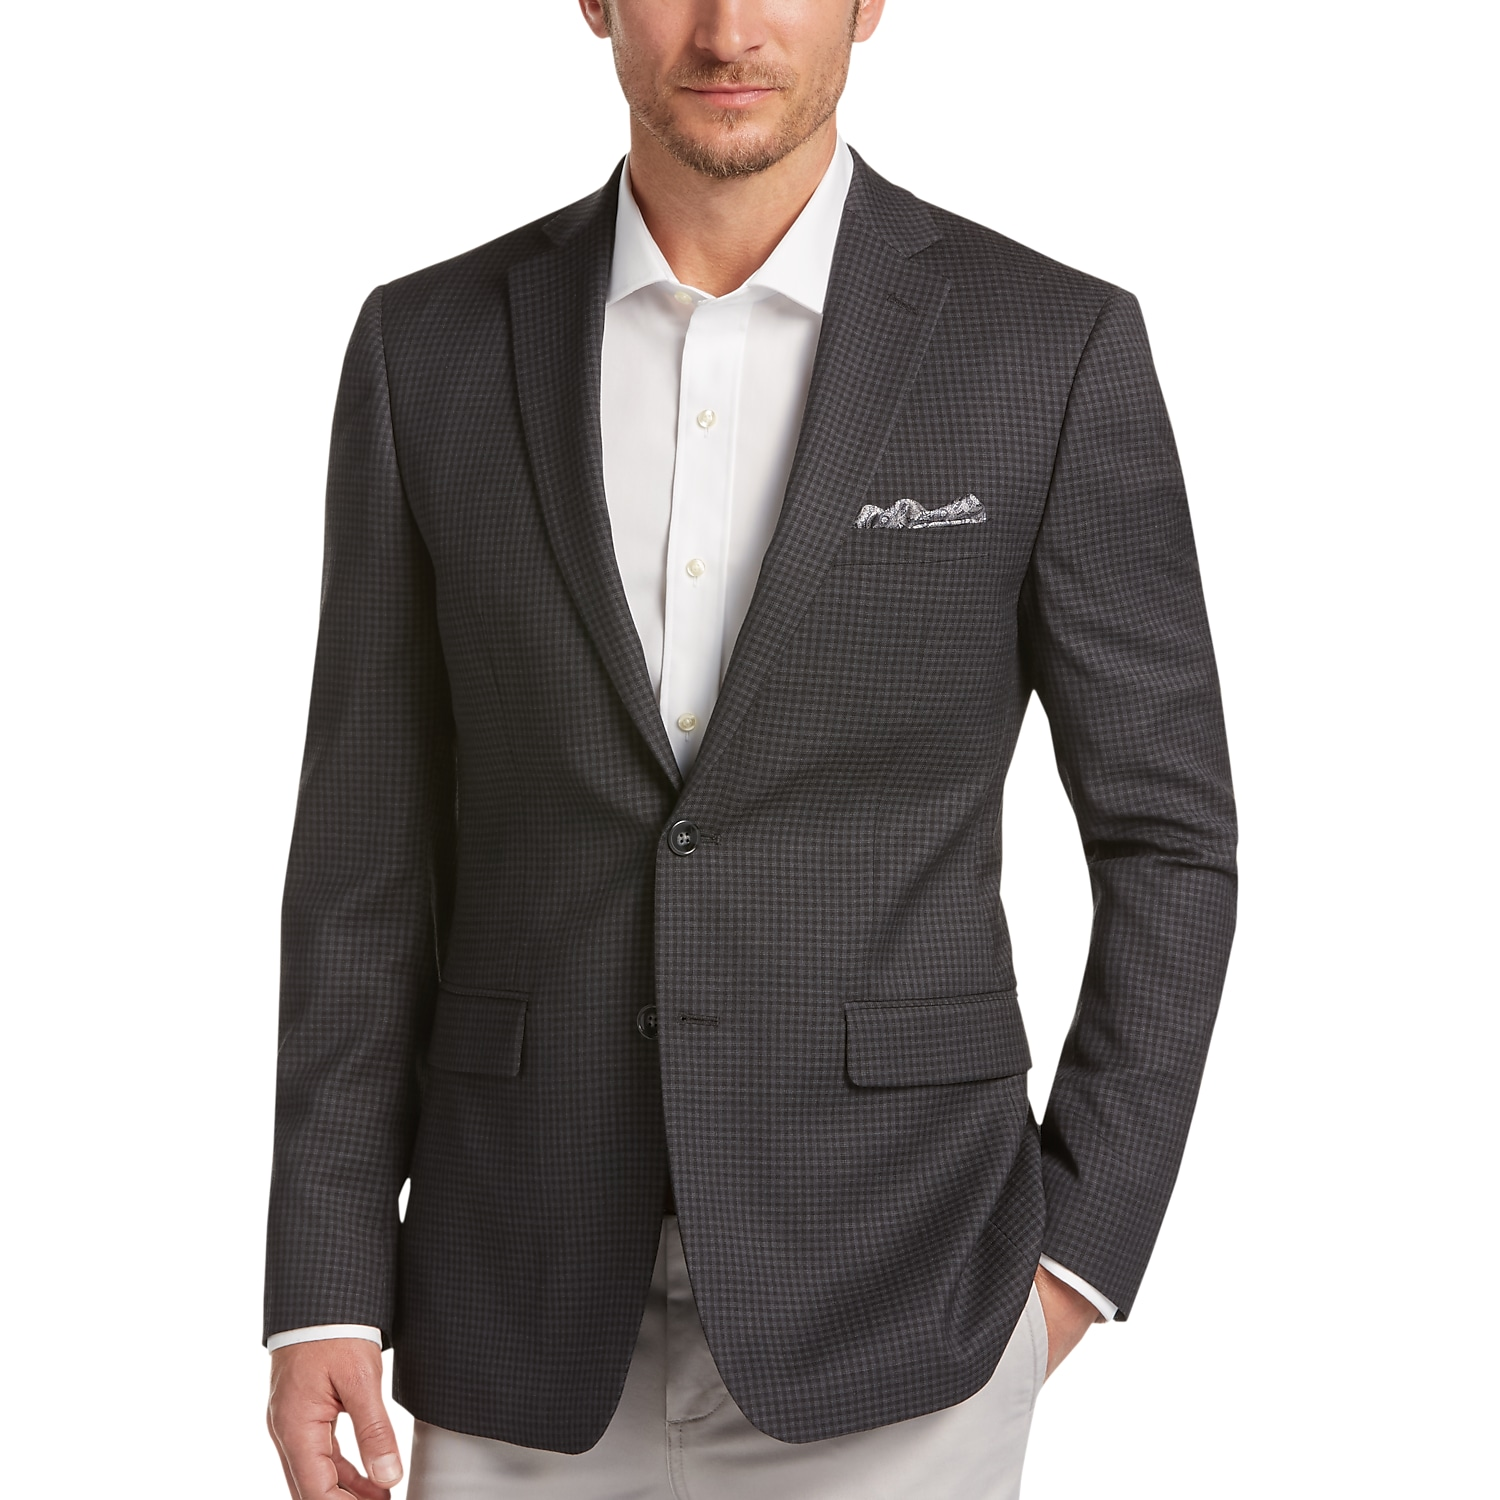 Calvin Klein Charcoal Check Extreme Slim Fit Sport Coat - Men's ...